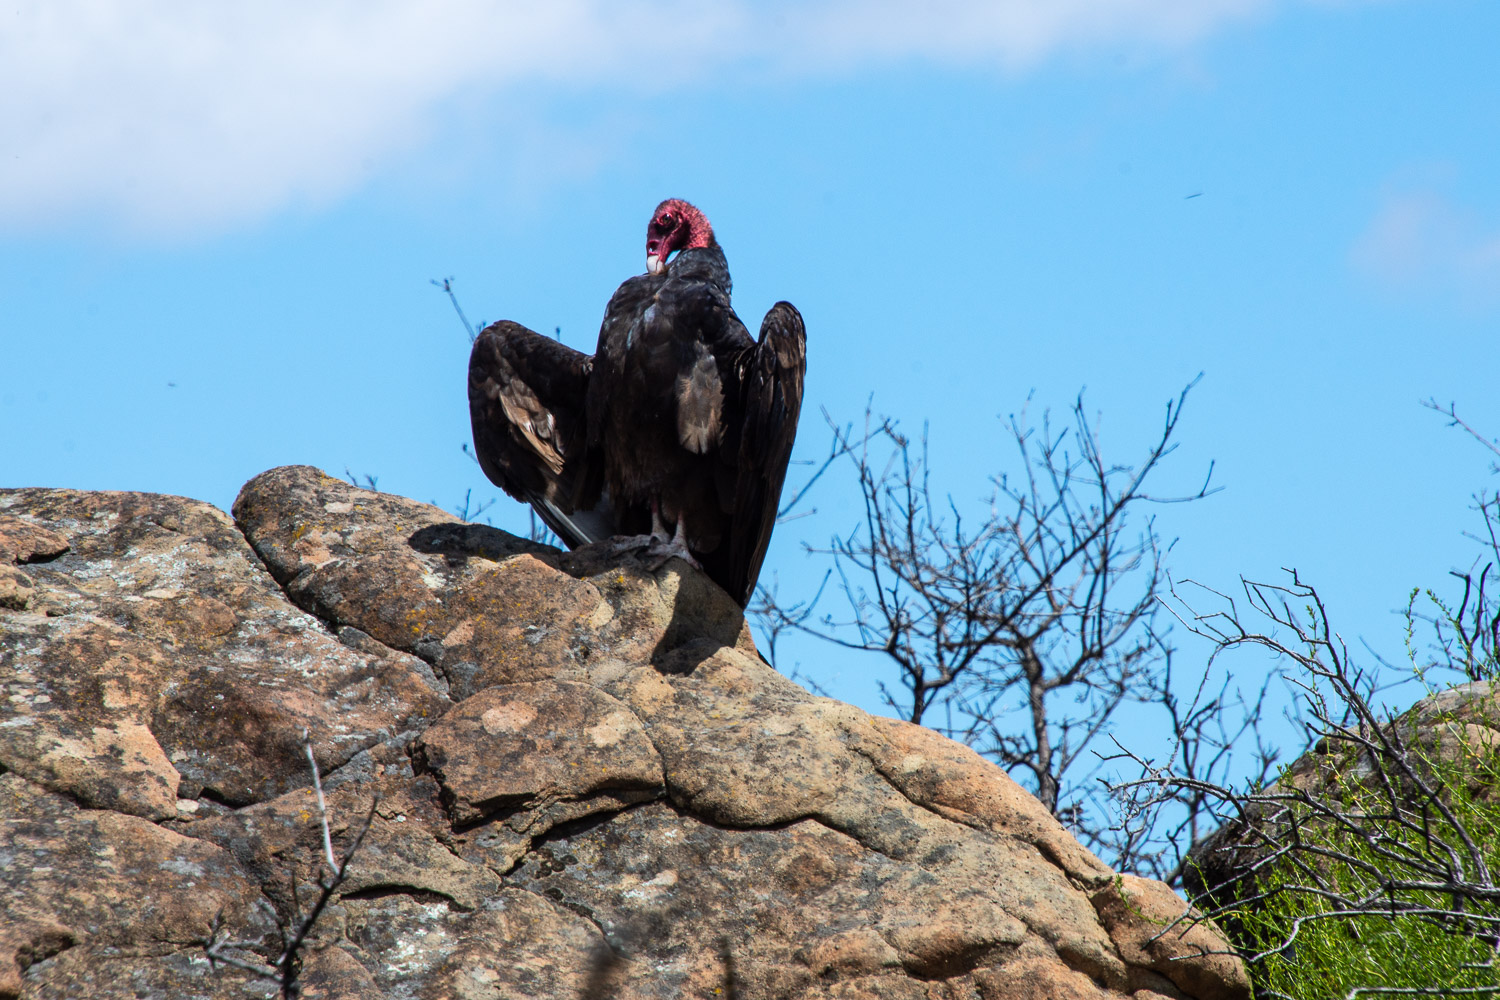 Turkey vulture at Stebbins Cold Canyon